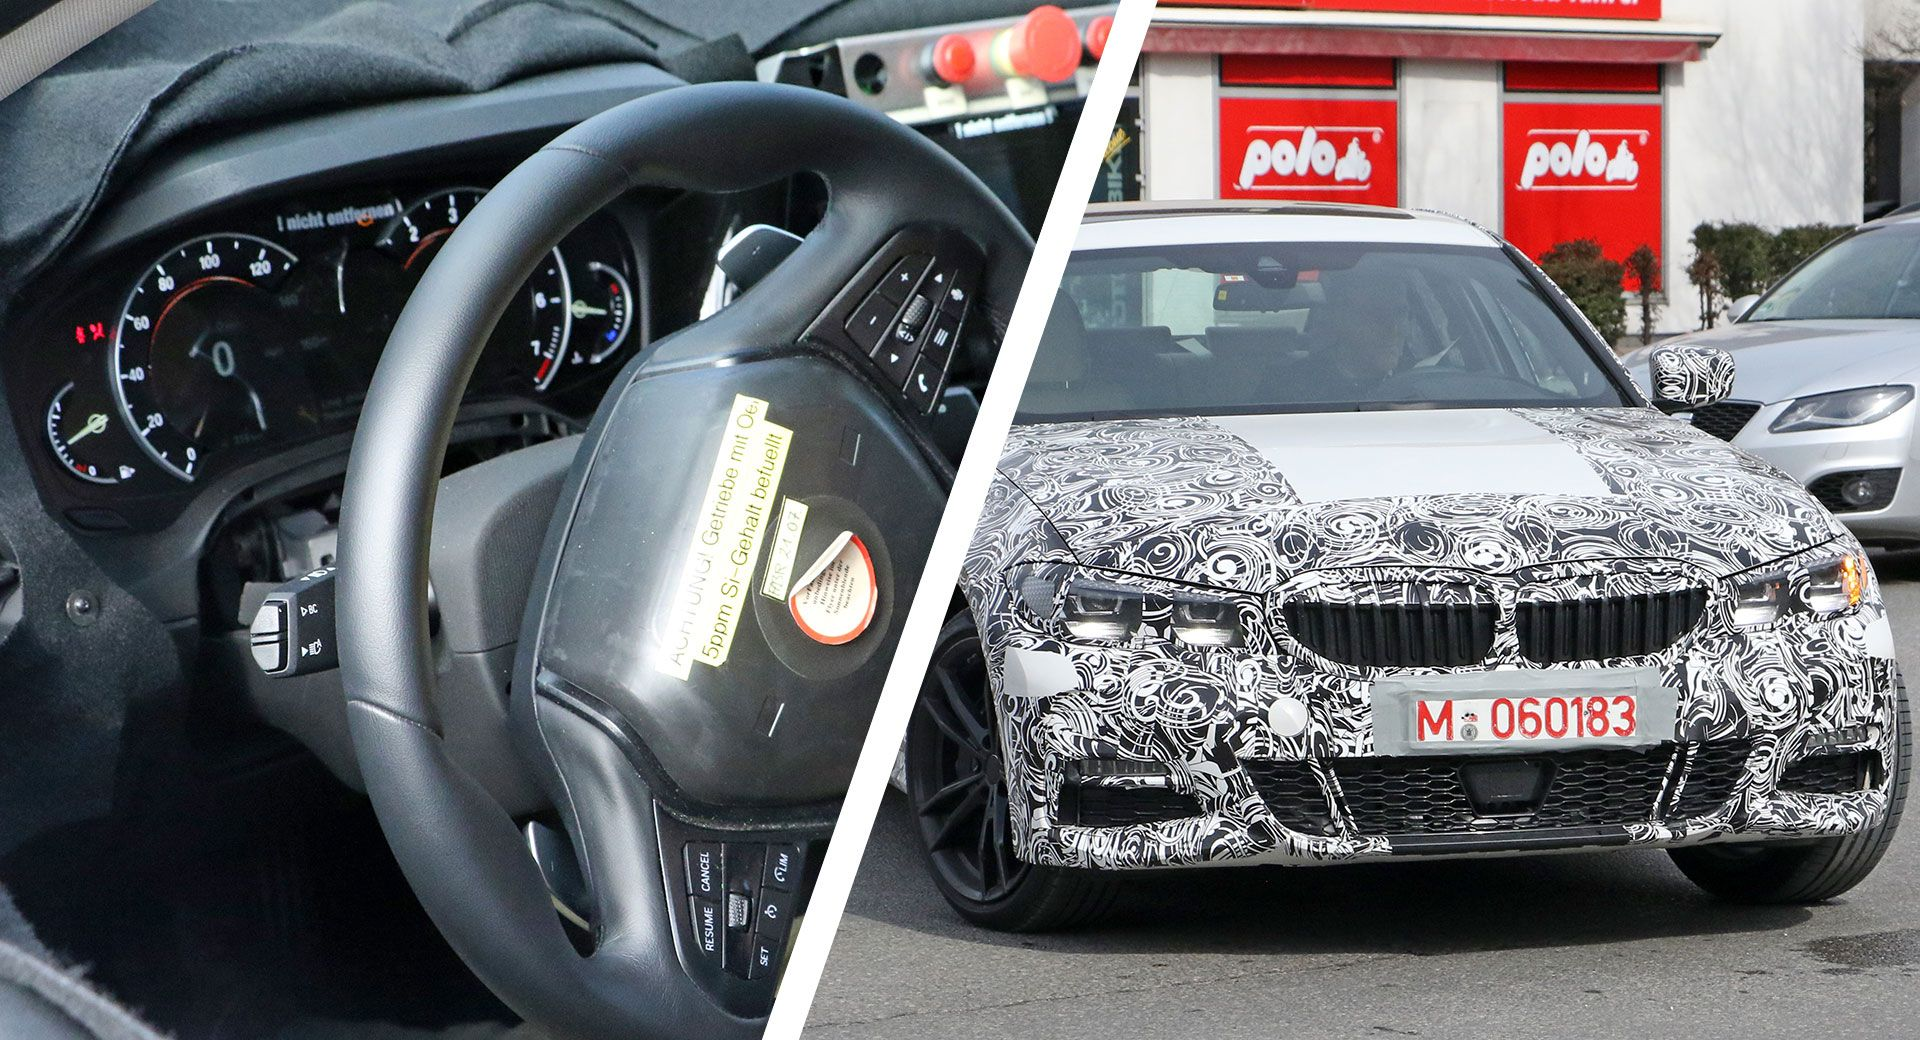 2019 Bmw 3 Series Latest Photos Along With Everything Else We Know